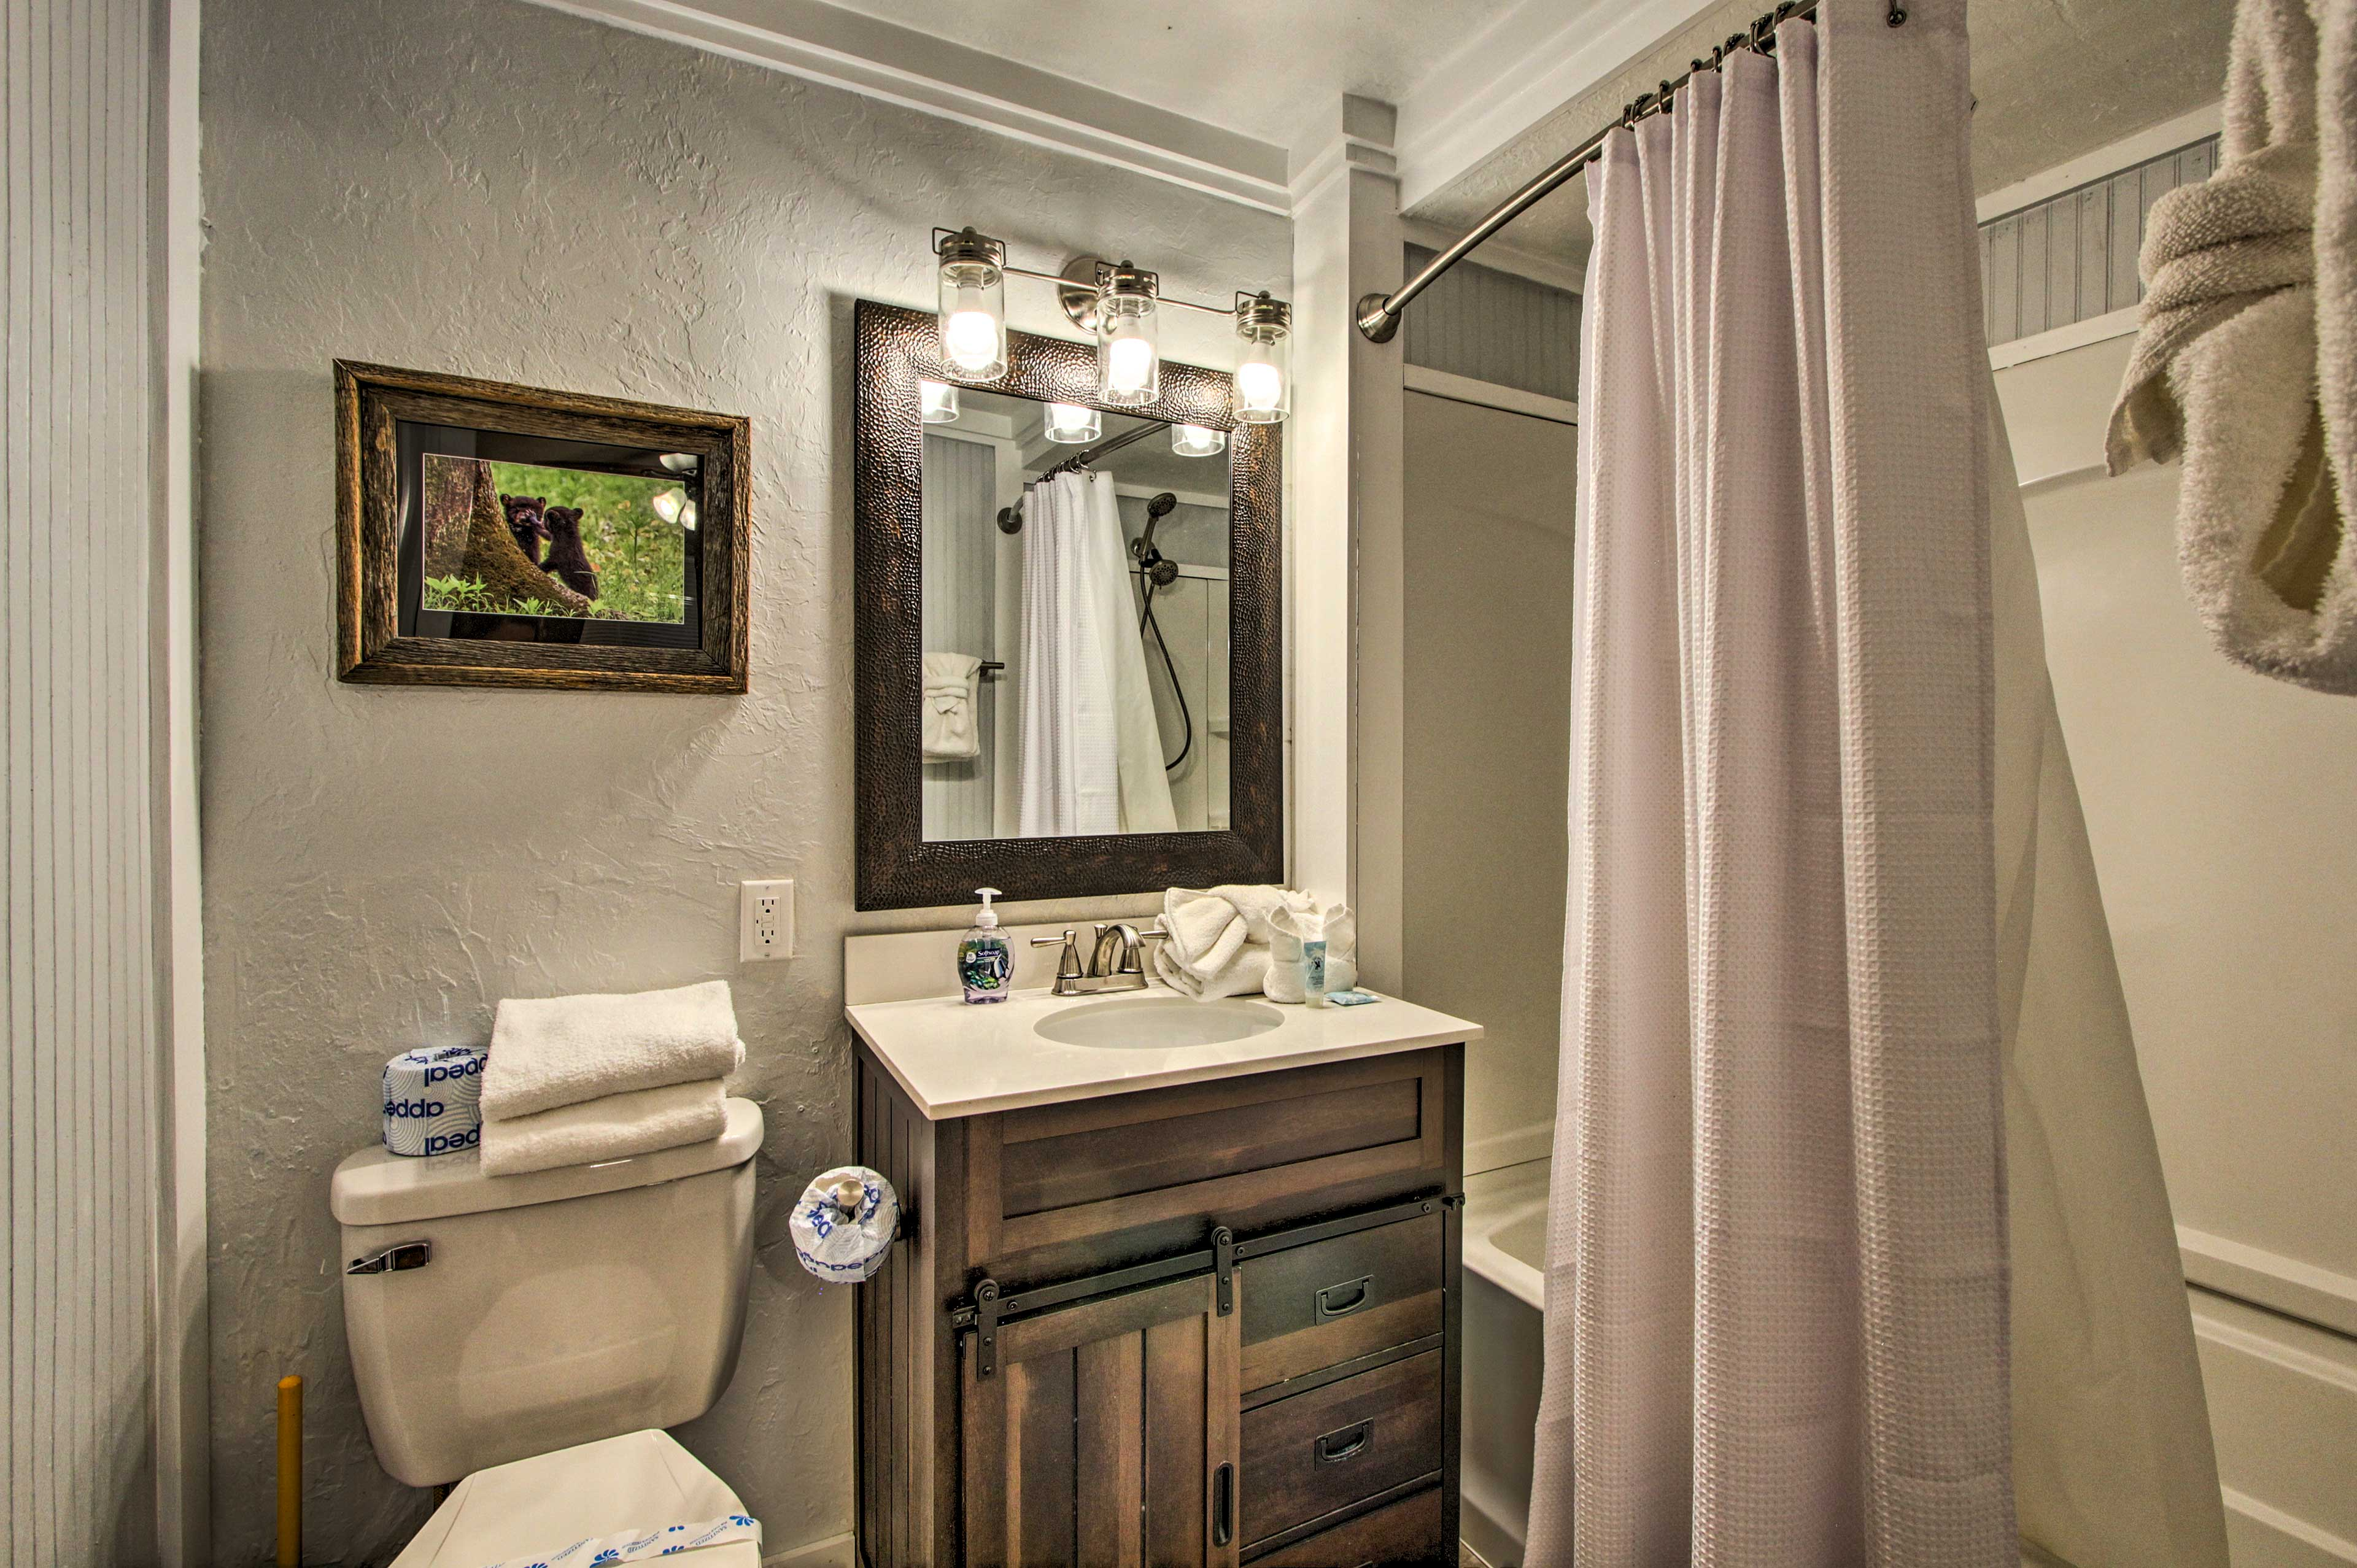 Rinse off the day in this remodeled bathroom.